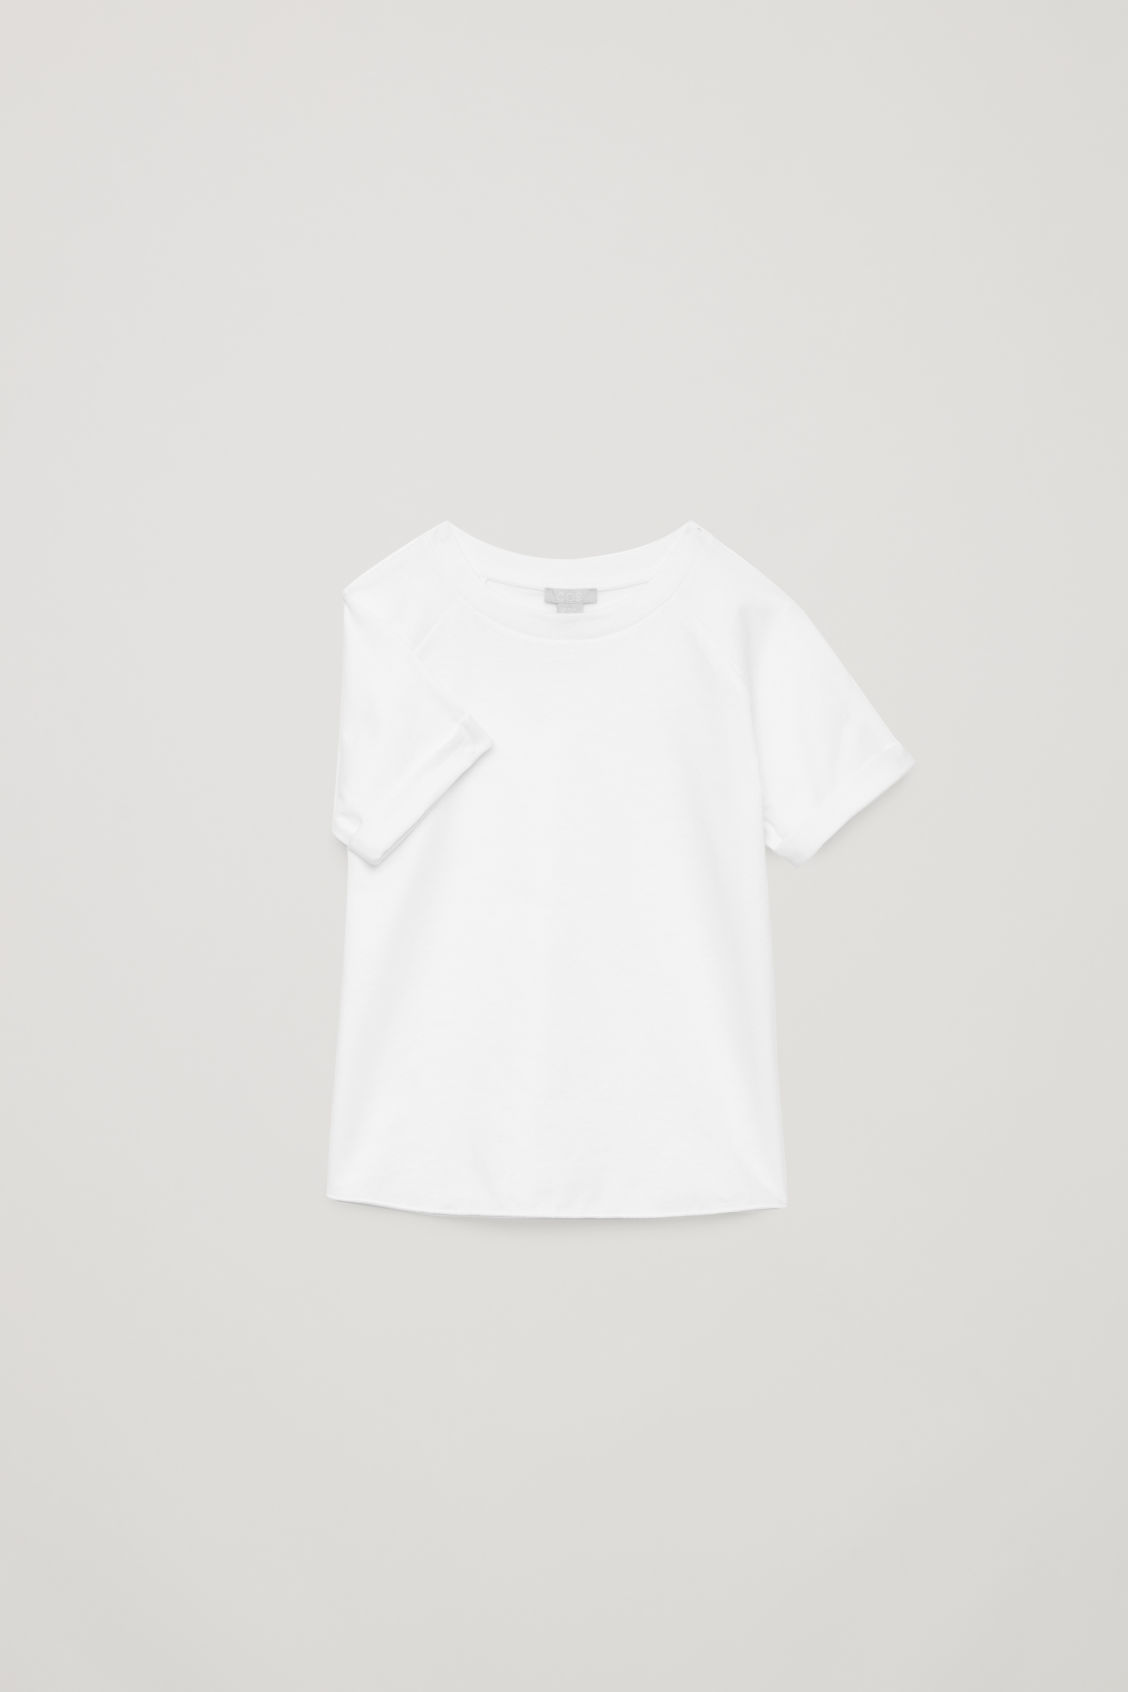 Detailed image of Cos raglan-sleeved cotton t-shirt in white